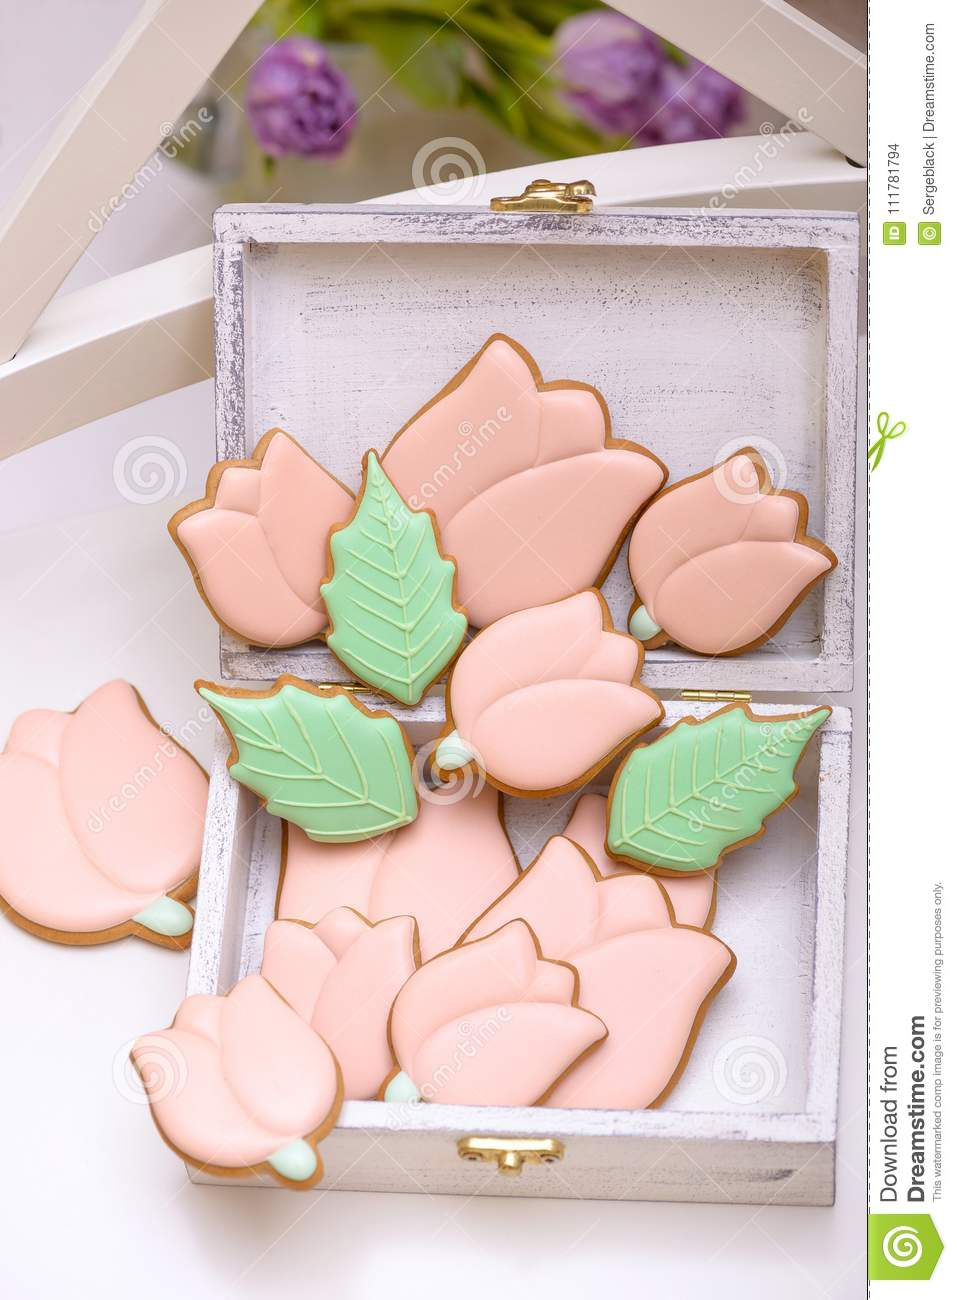 Homemade gingerbread cookies in the shape of tulips